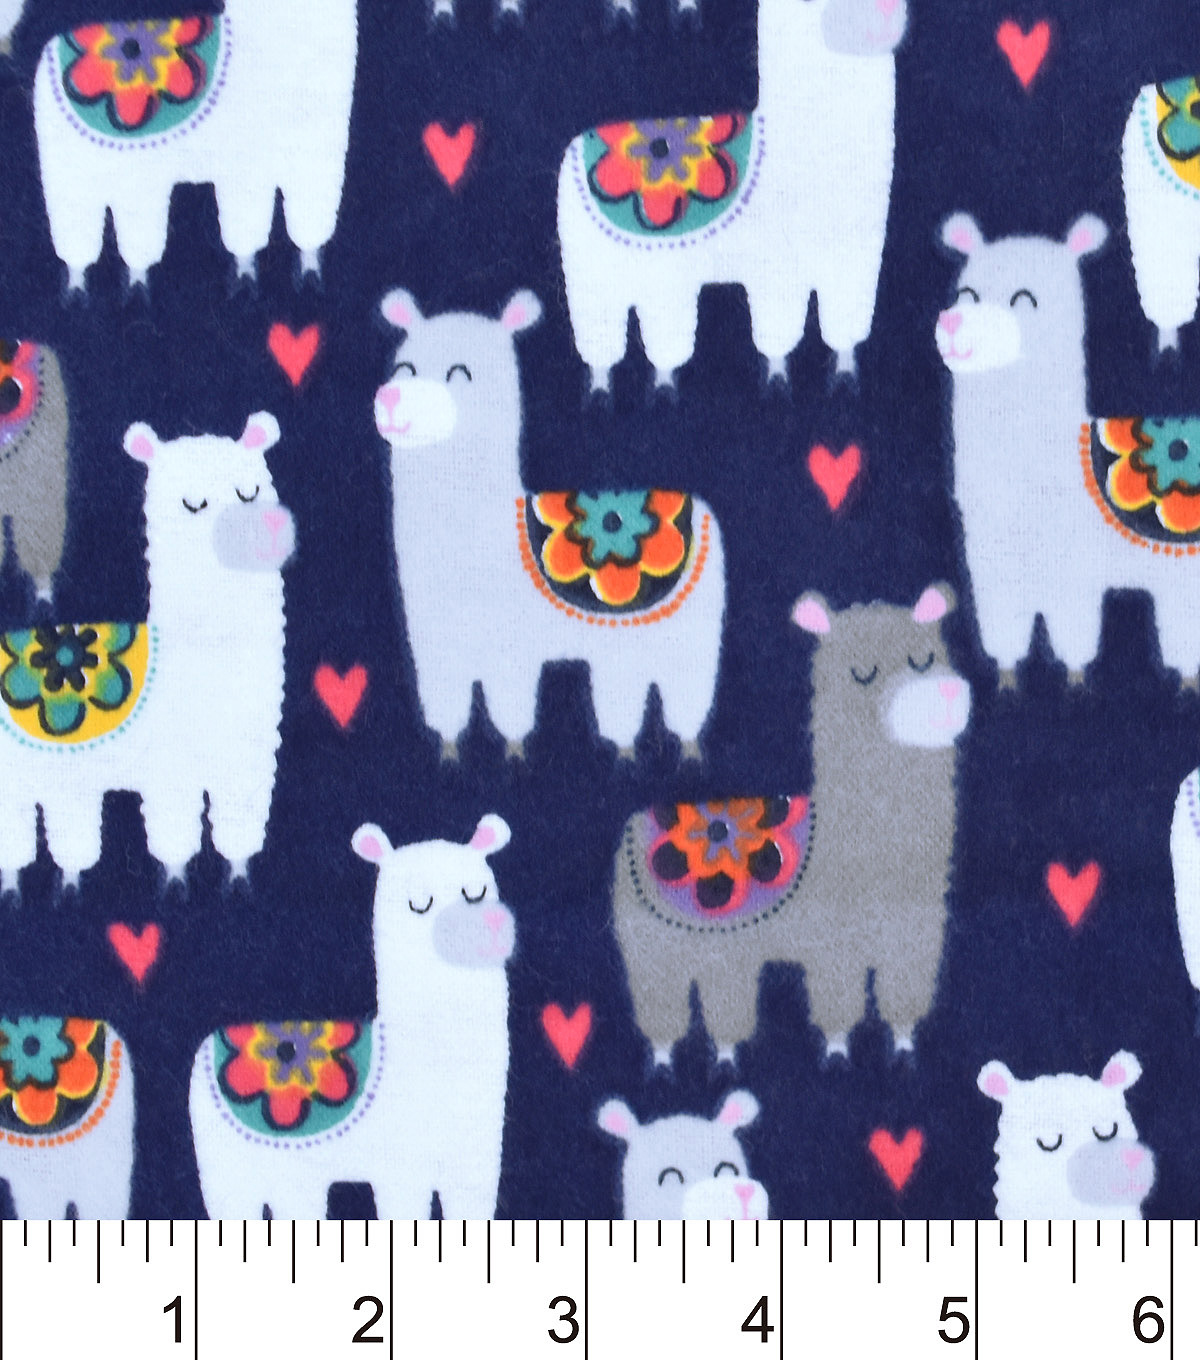 Snuggle Flannel Fabric -Patterned Llamas